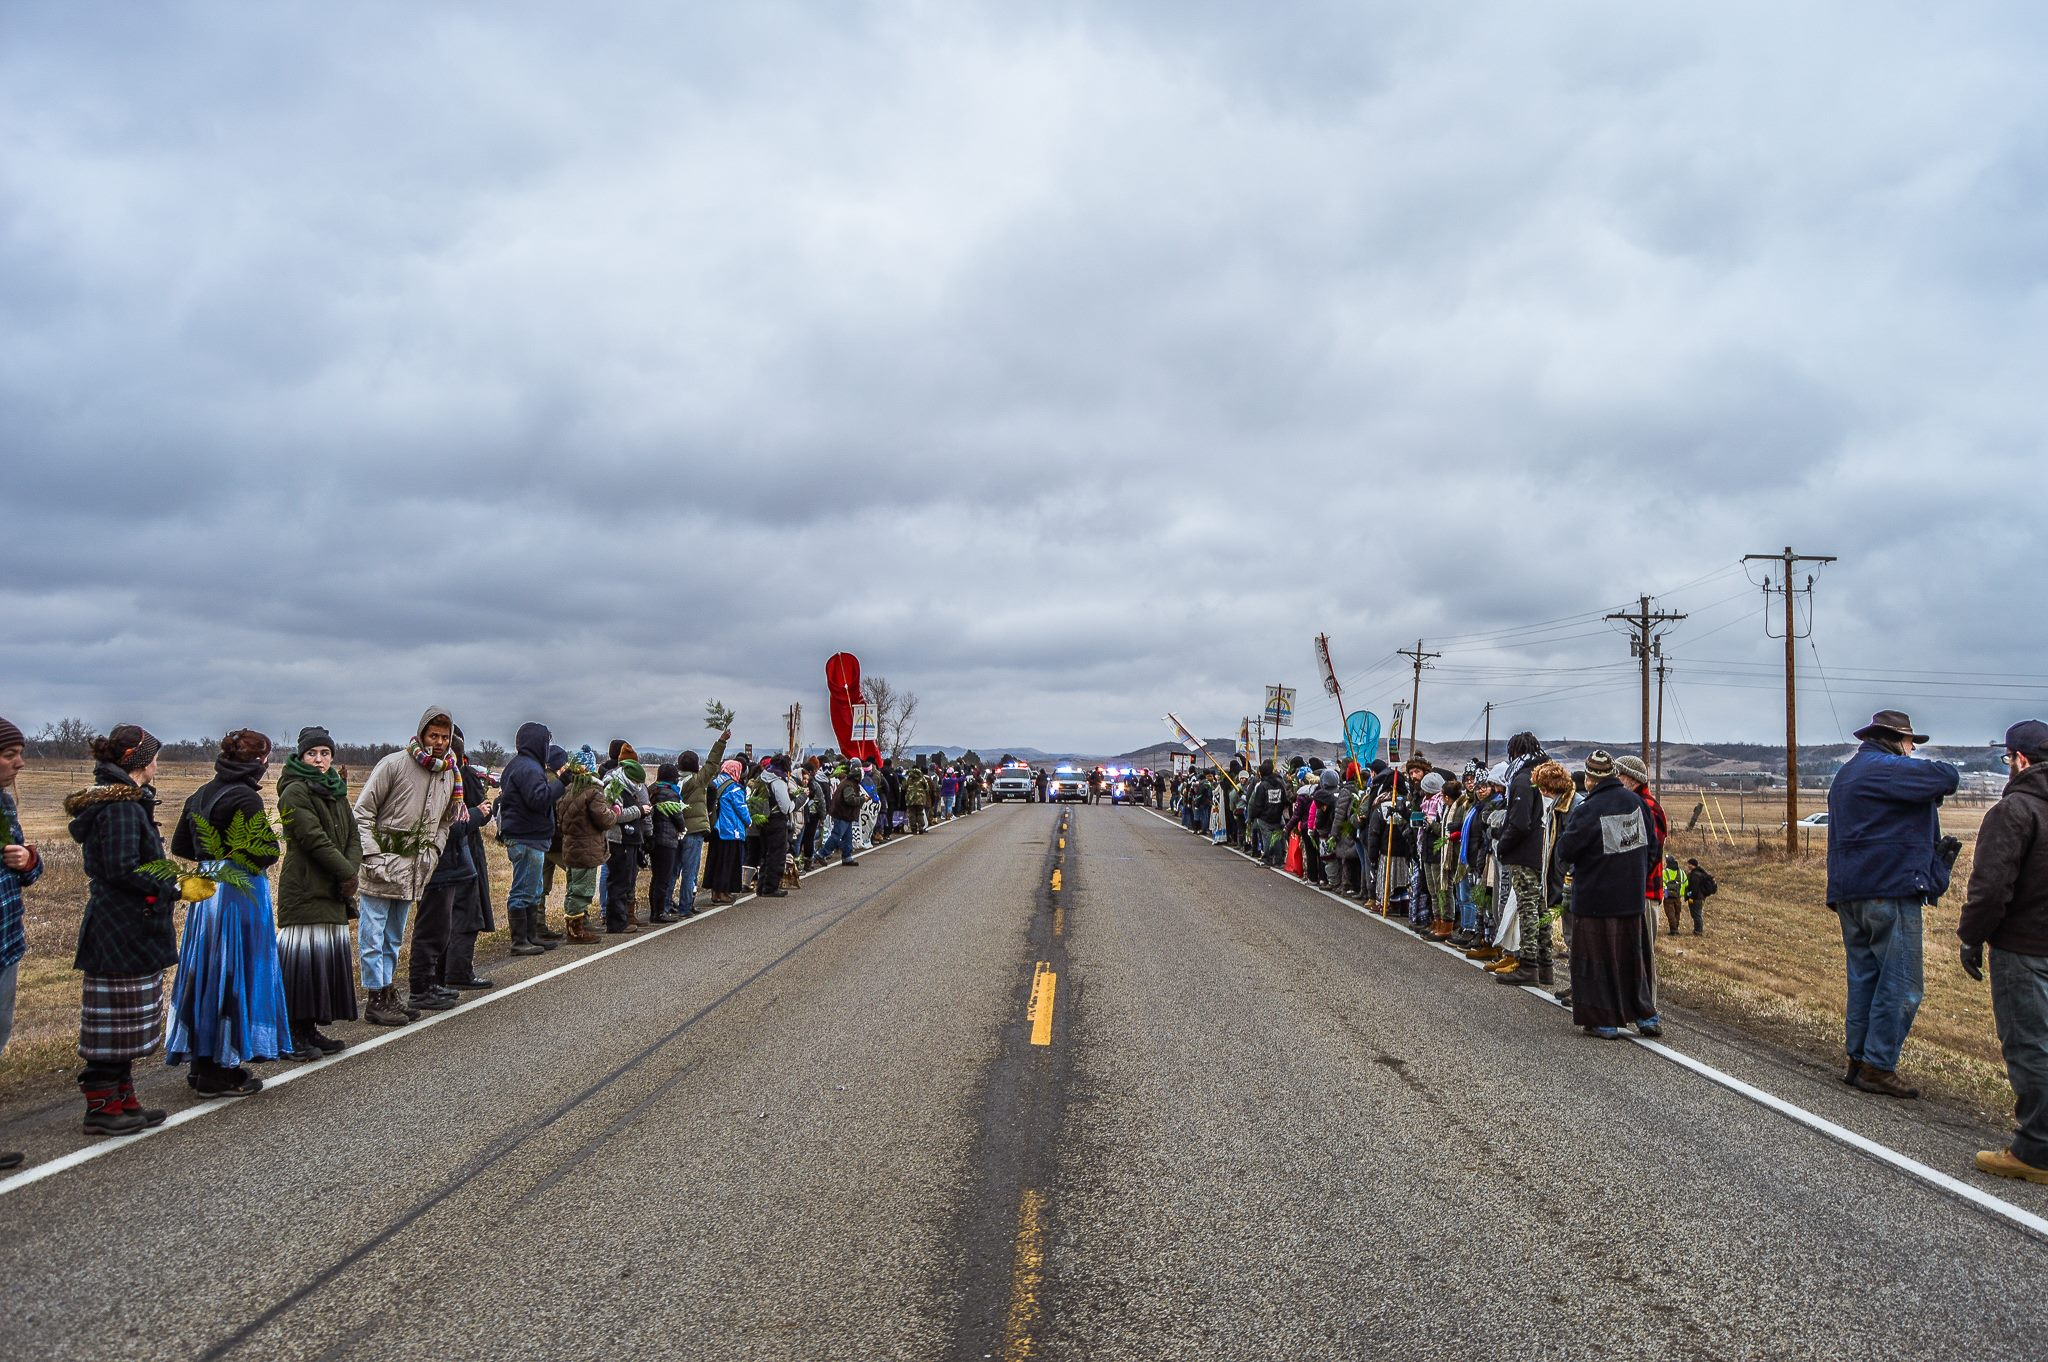 North Dakota sheriff hit with lawsuit as governor moves in on #NoDAPL camp